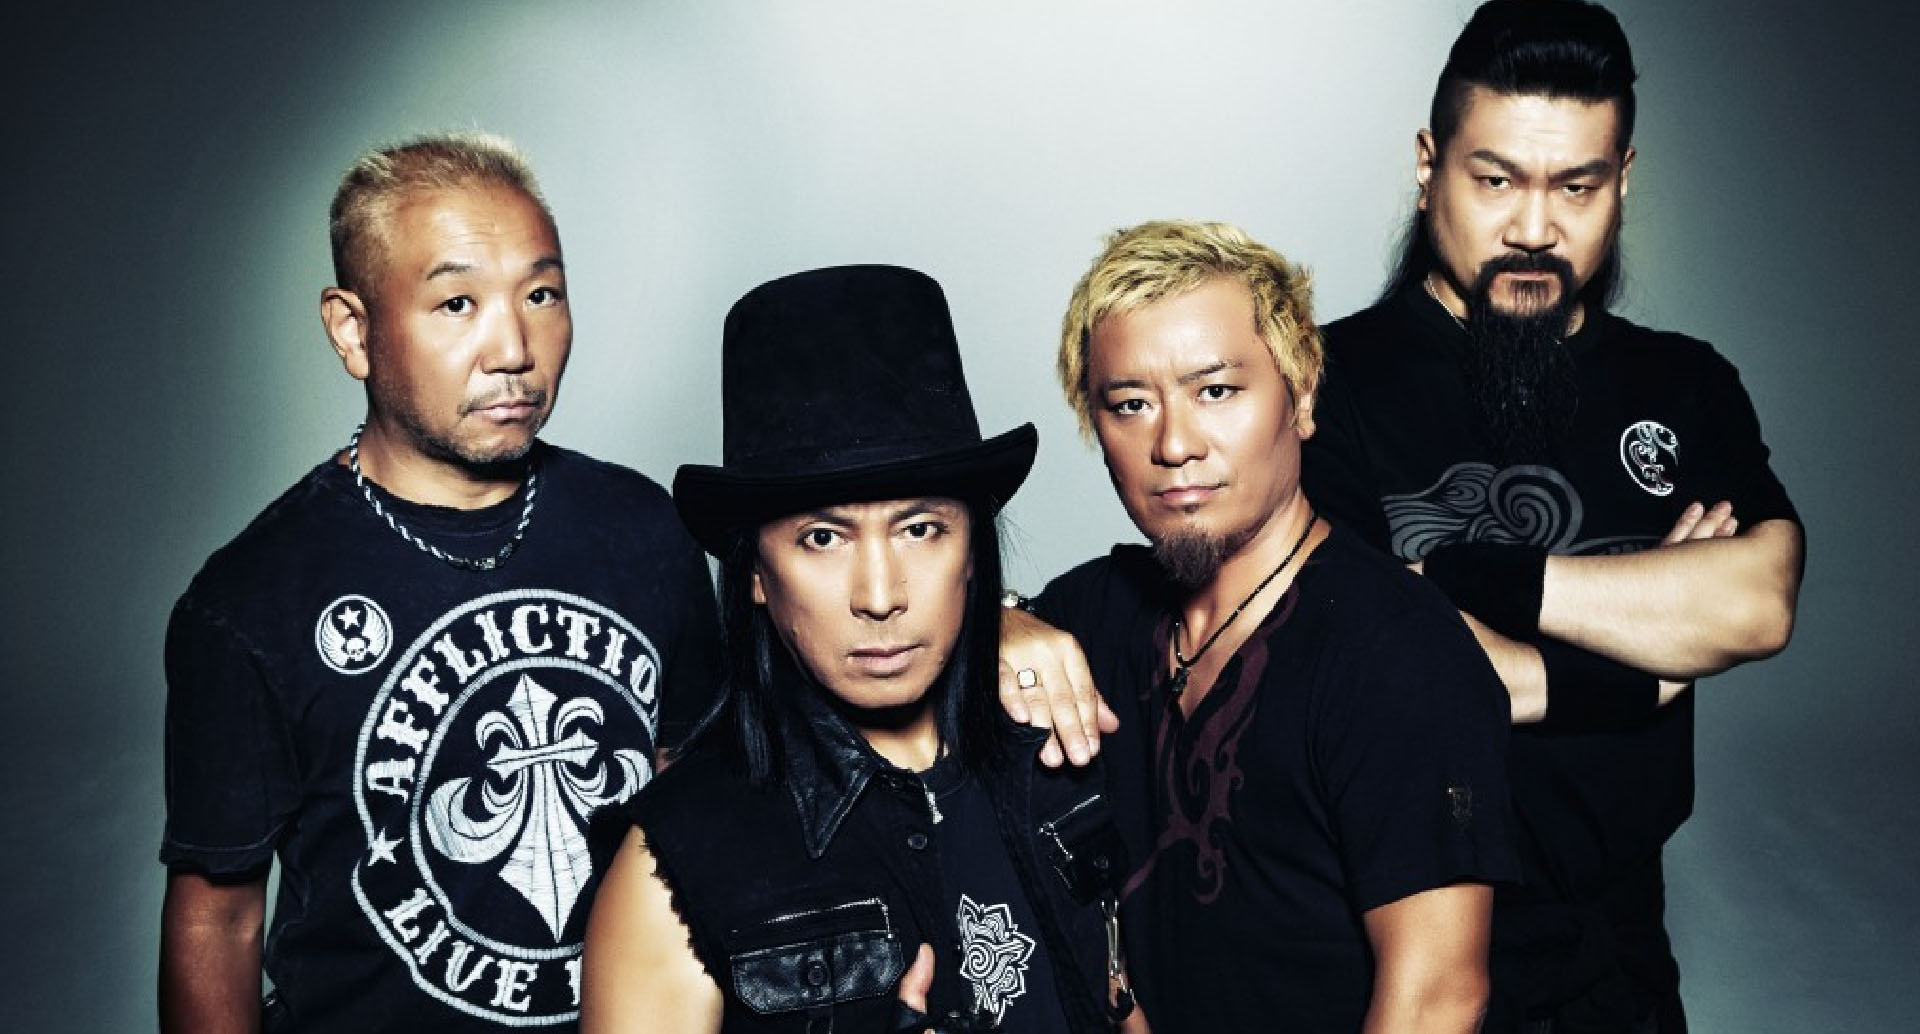 Loudness Live in Singapore